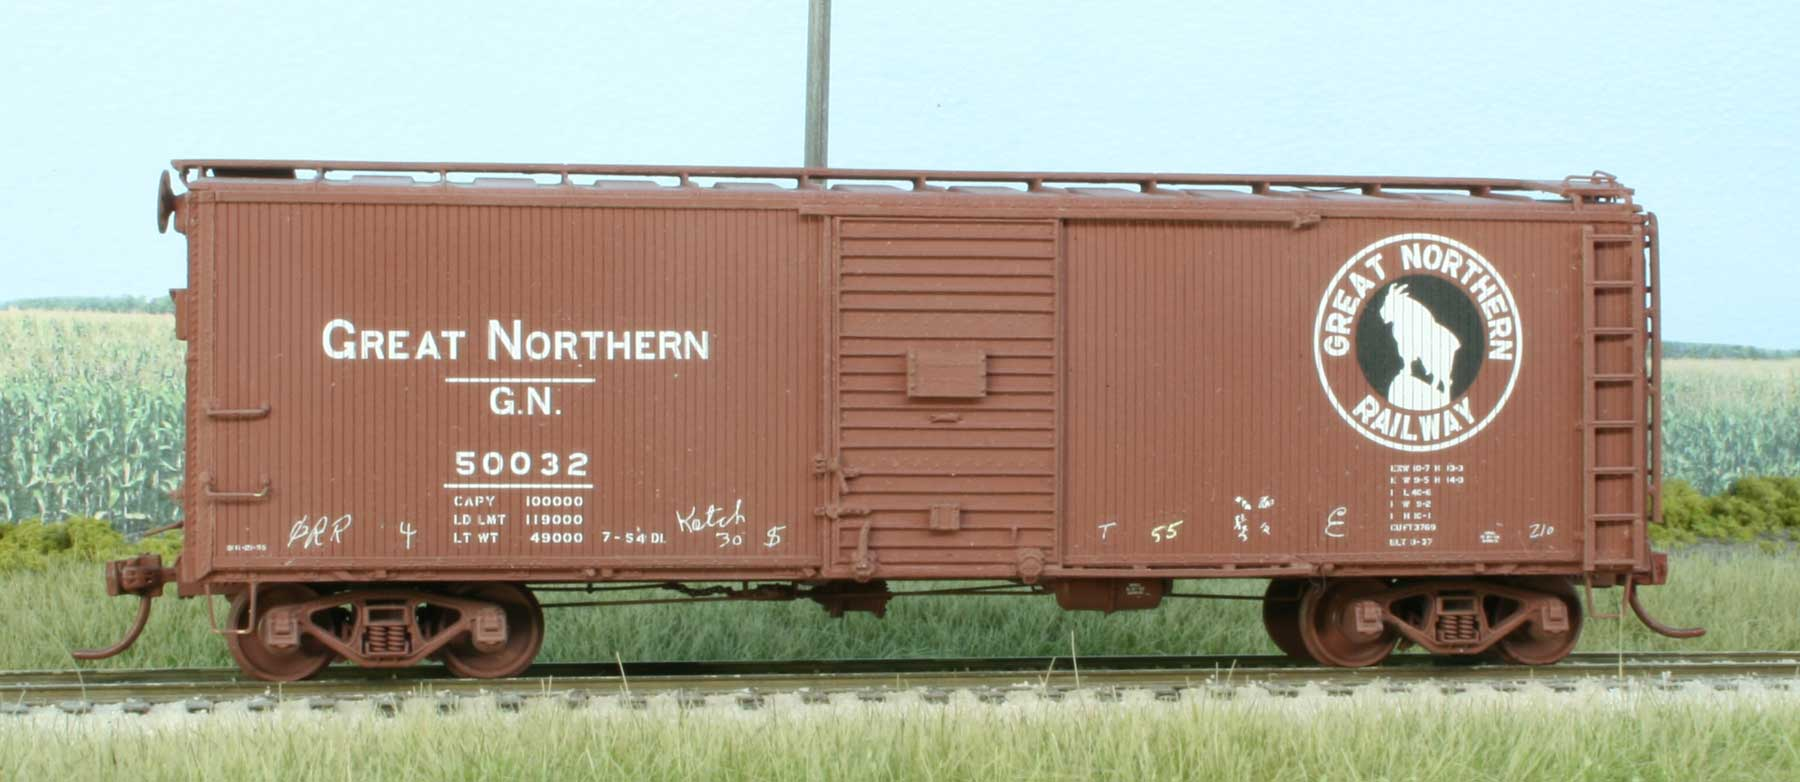 Kit 11.0 - Great Northern Mid-Century 40-foot, 6-inch Composite Wood-Sheathed Boxcars